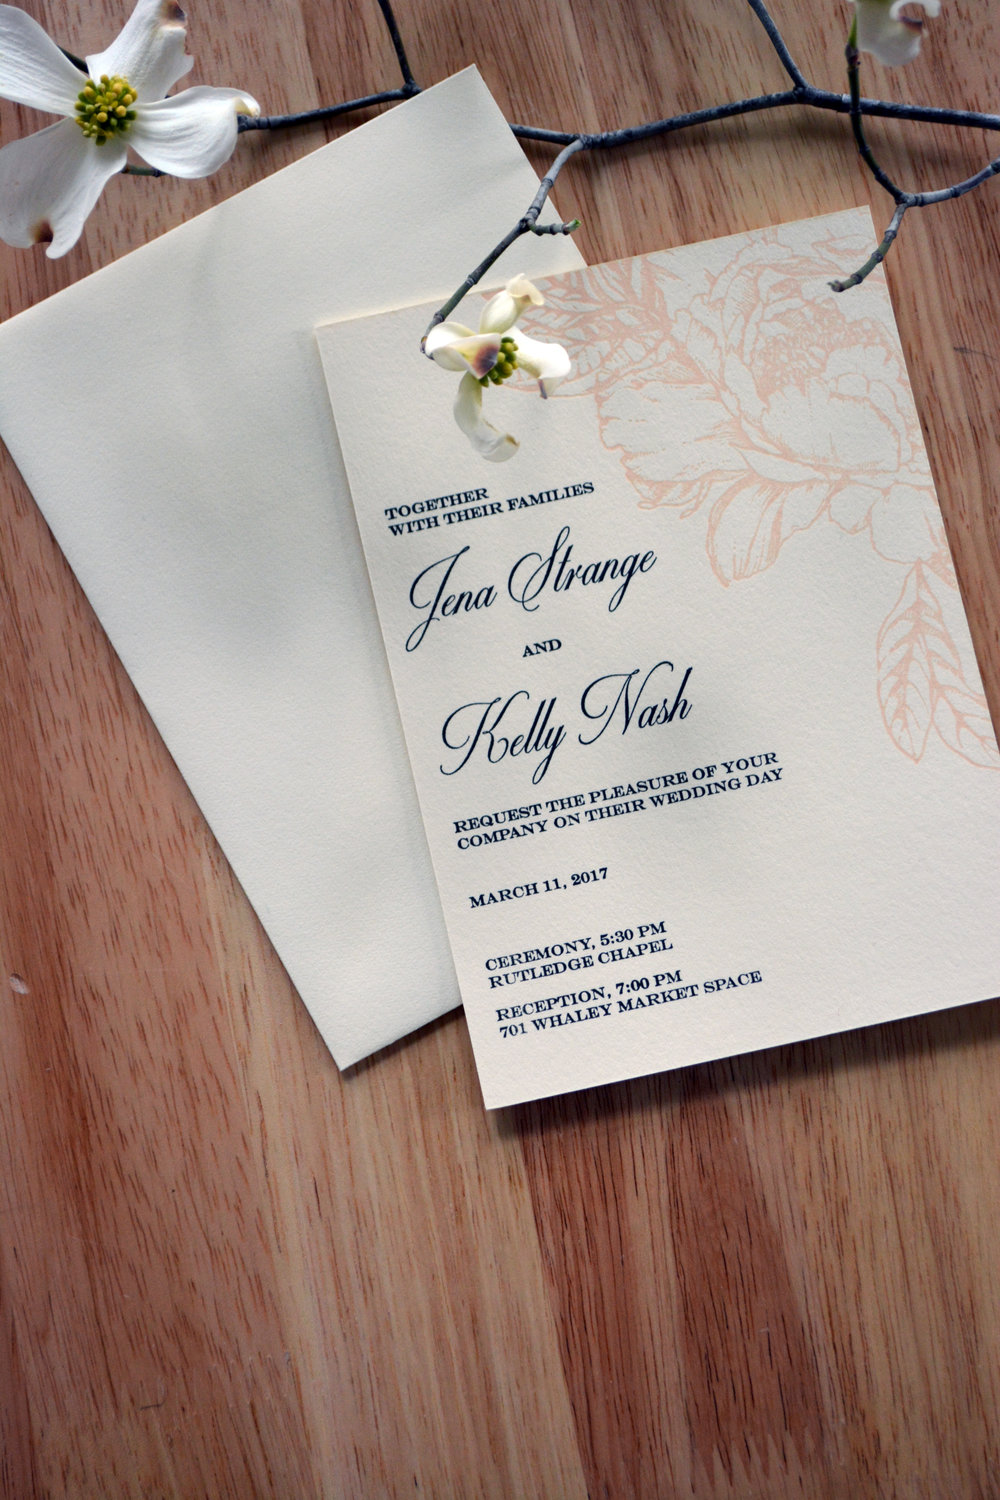 Jena & Kelly, 4-piece wedding invitation suite, 2 color letterpress printing on Crane's Lettra 220# DTC in ecru white